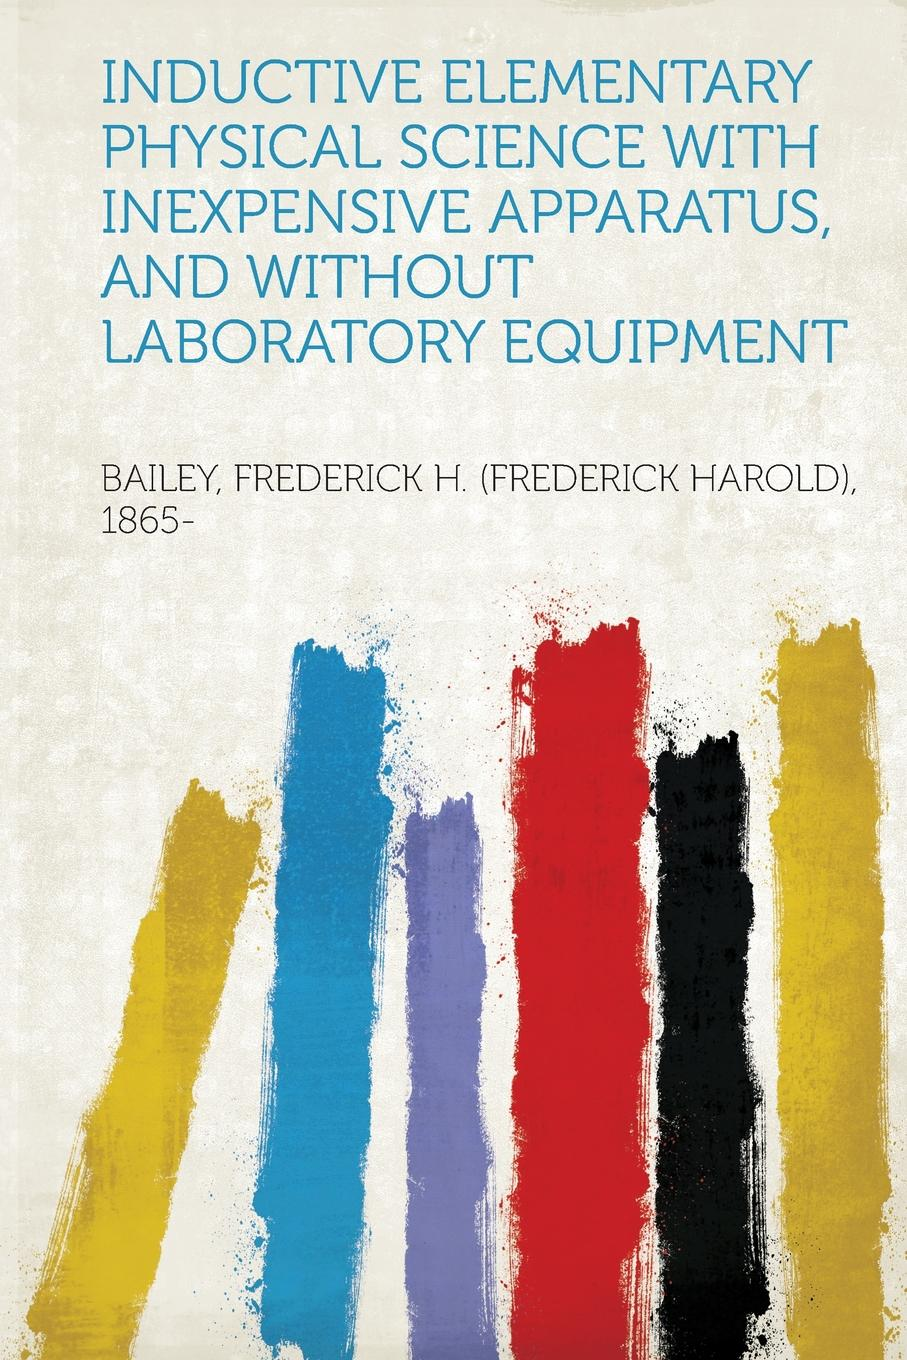 Bailey Frederick H. (Frederick H 1865- Inductive Elementary Physical Science With Inexpensive Apparatus, and Without Laboratory Equipment laboratory equipment and apparatus